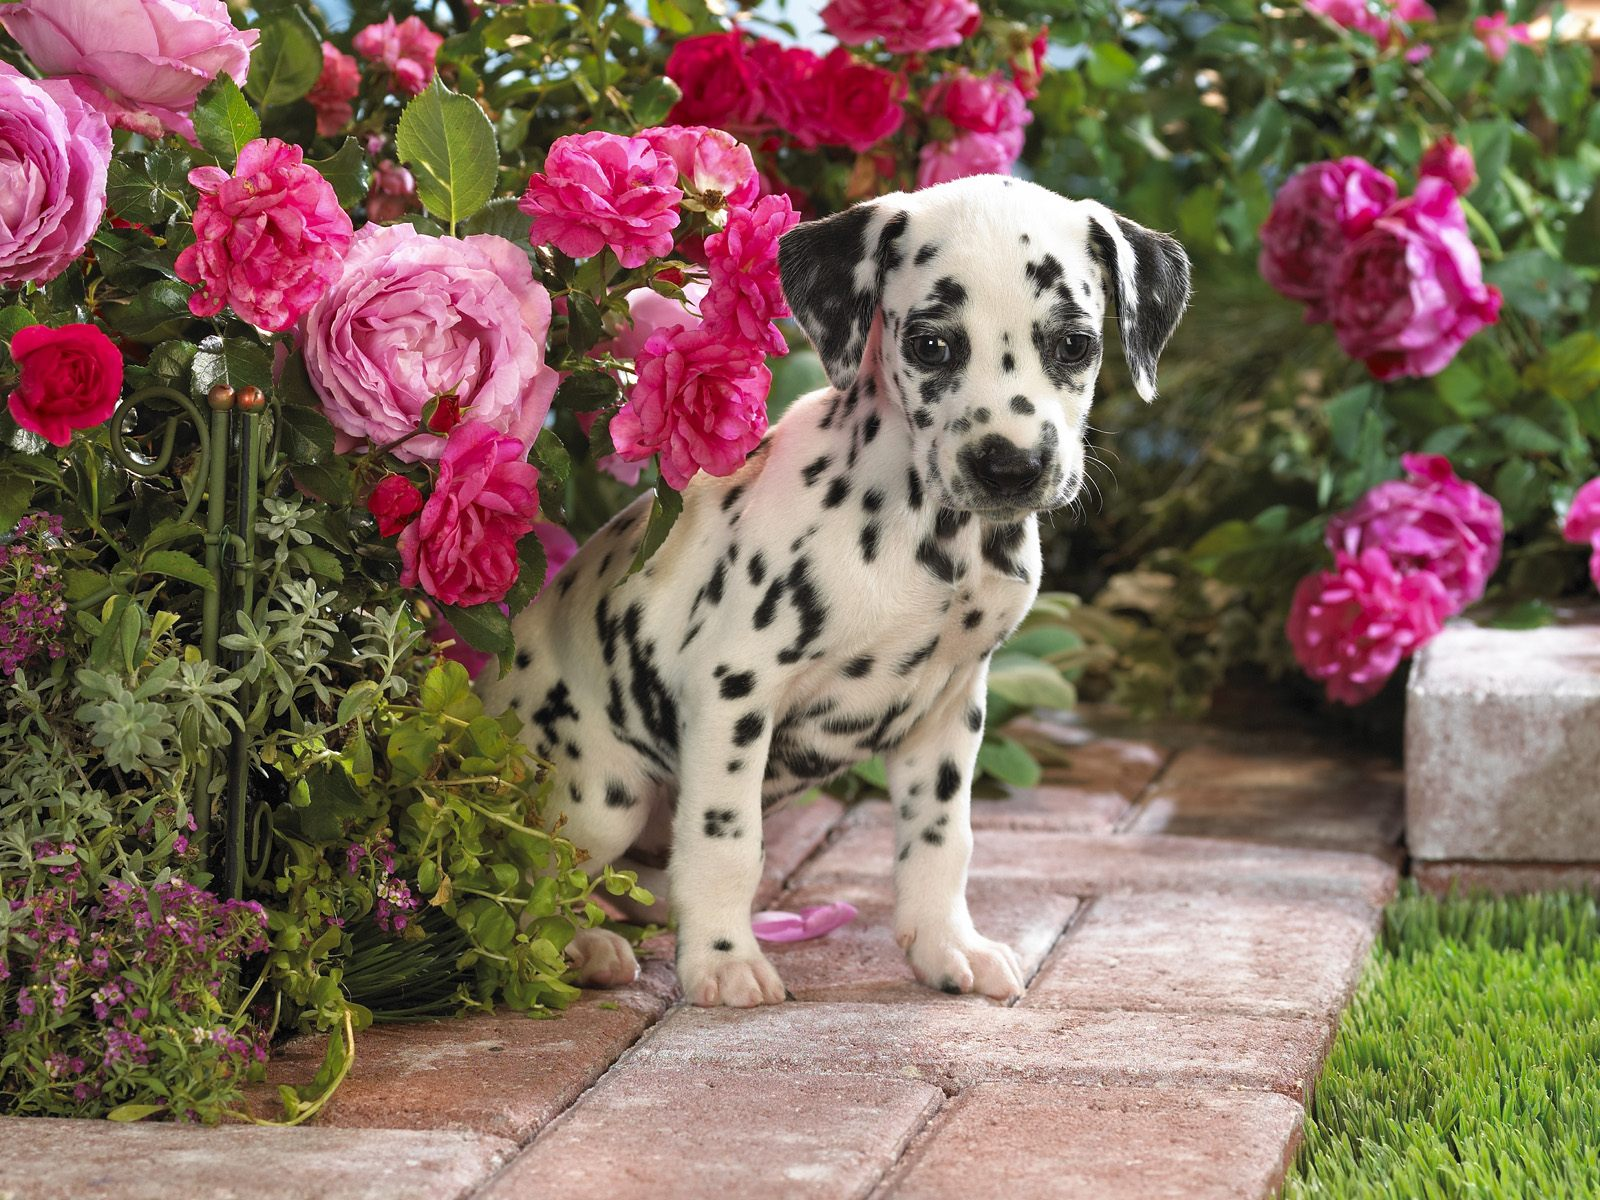 Cute Dalmatian Puppies - 5 Wallpapers Download Free Wallpapers in HD ...